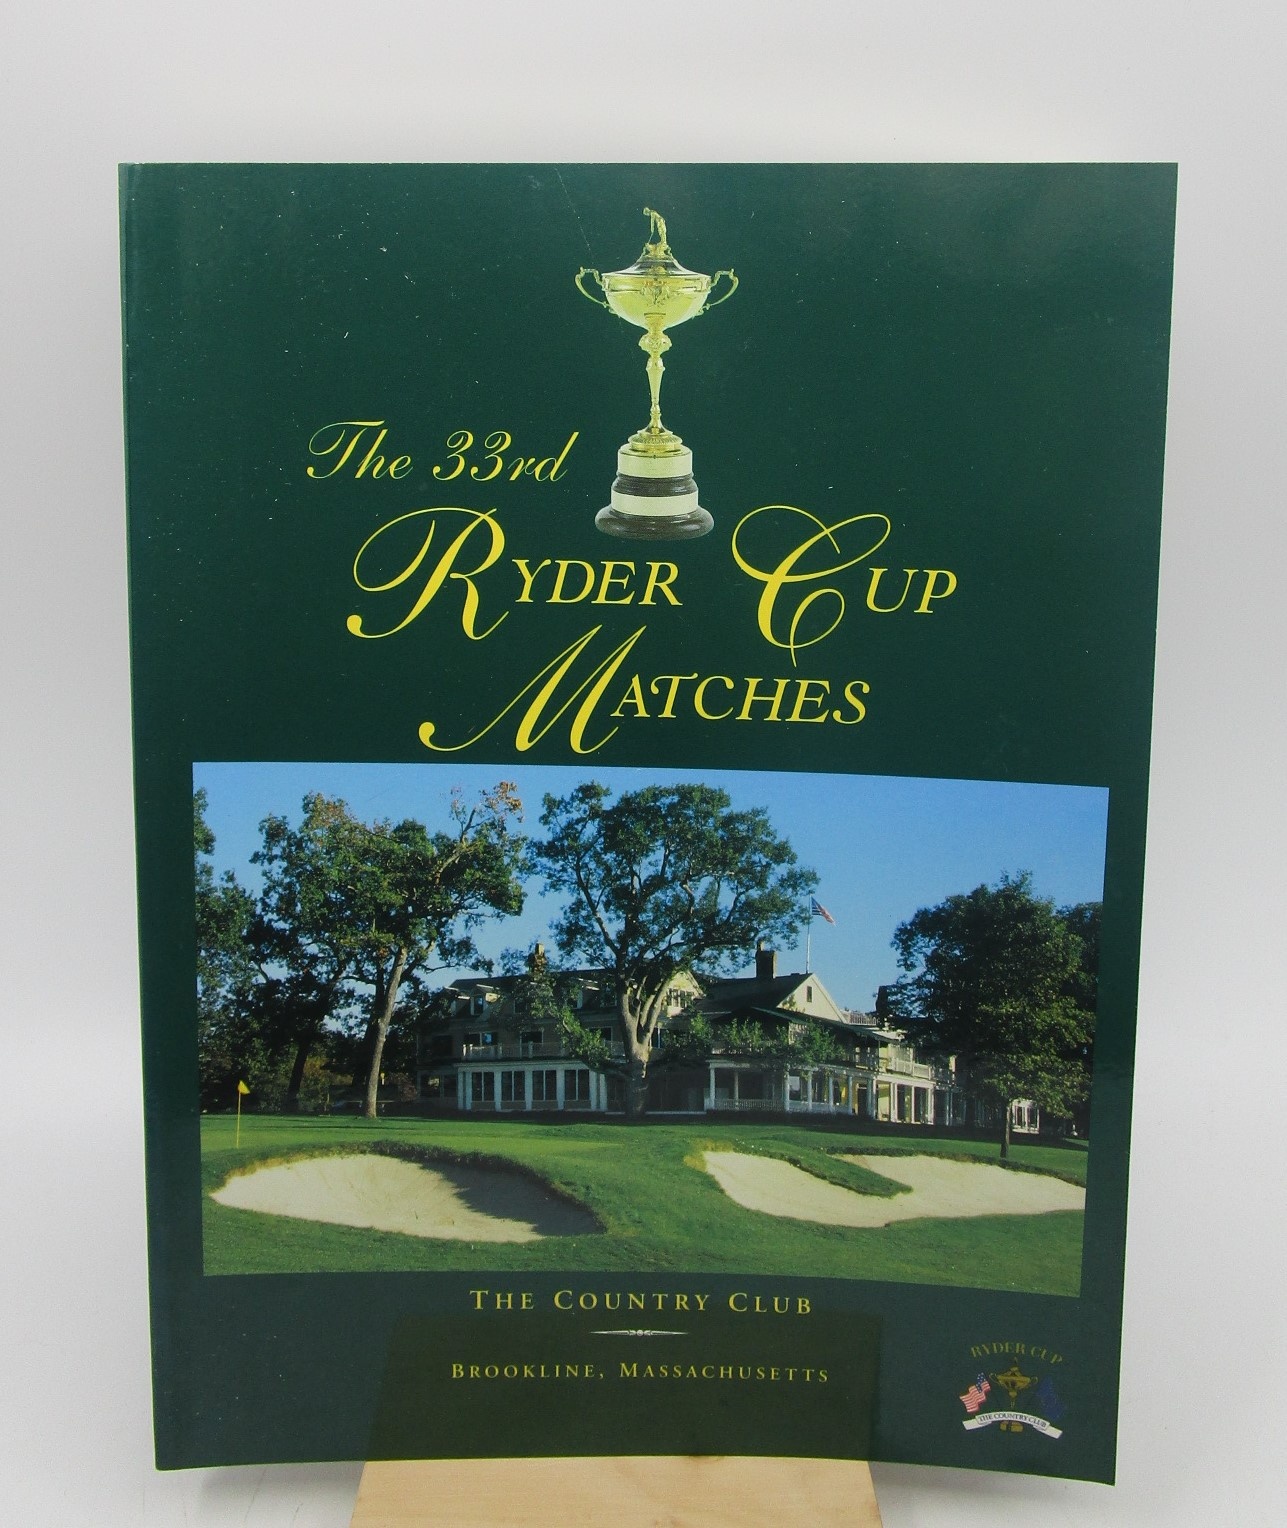 Image for The 33rd Ryder Cup Matches (1999) The Country Club Brookline, Massachusetts